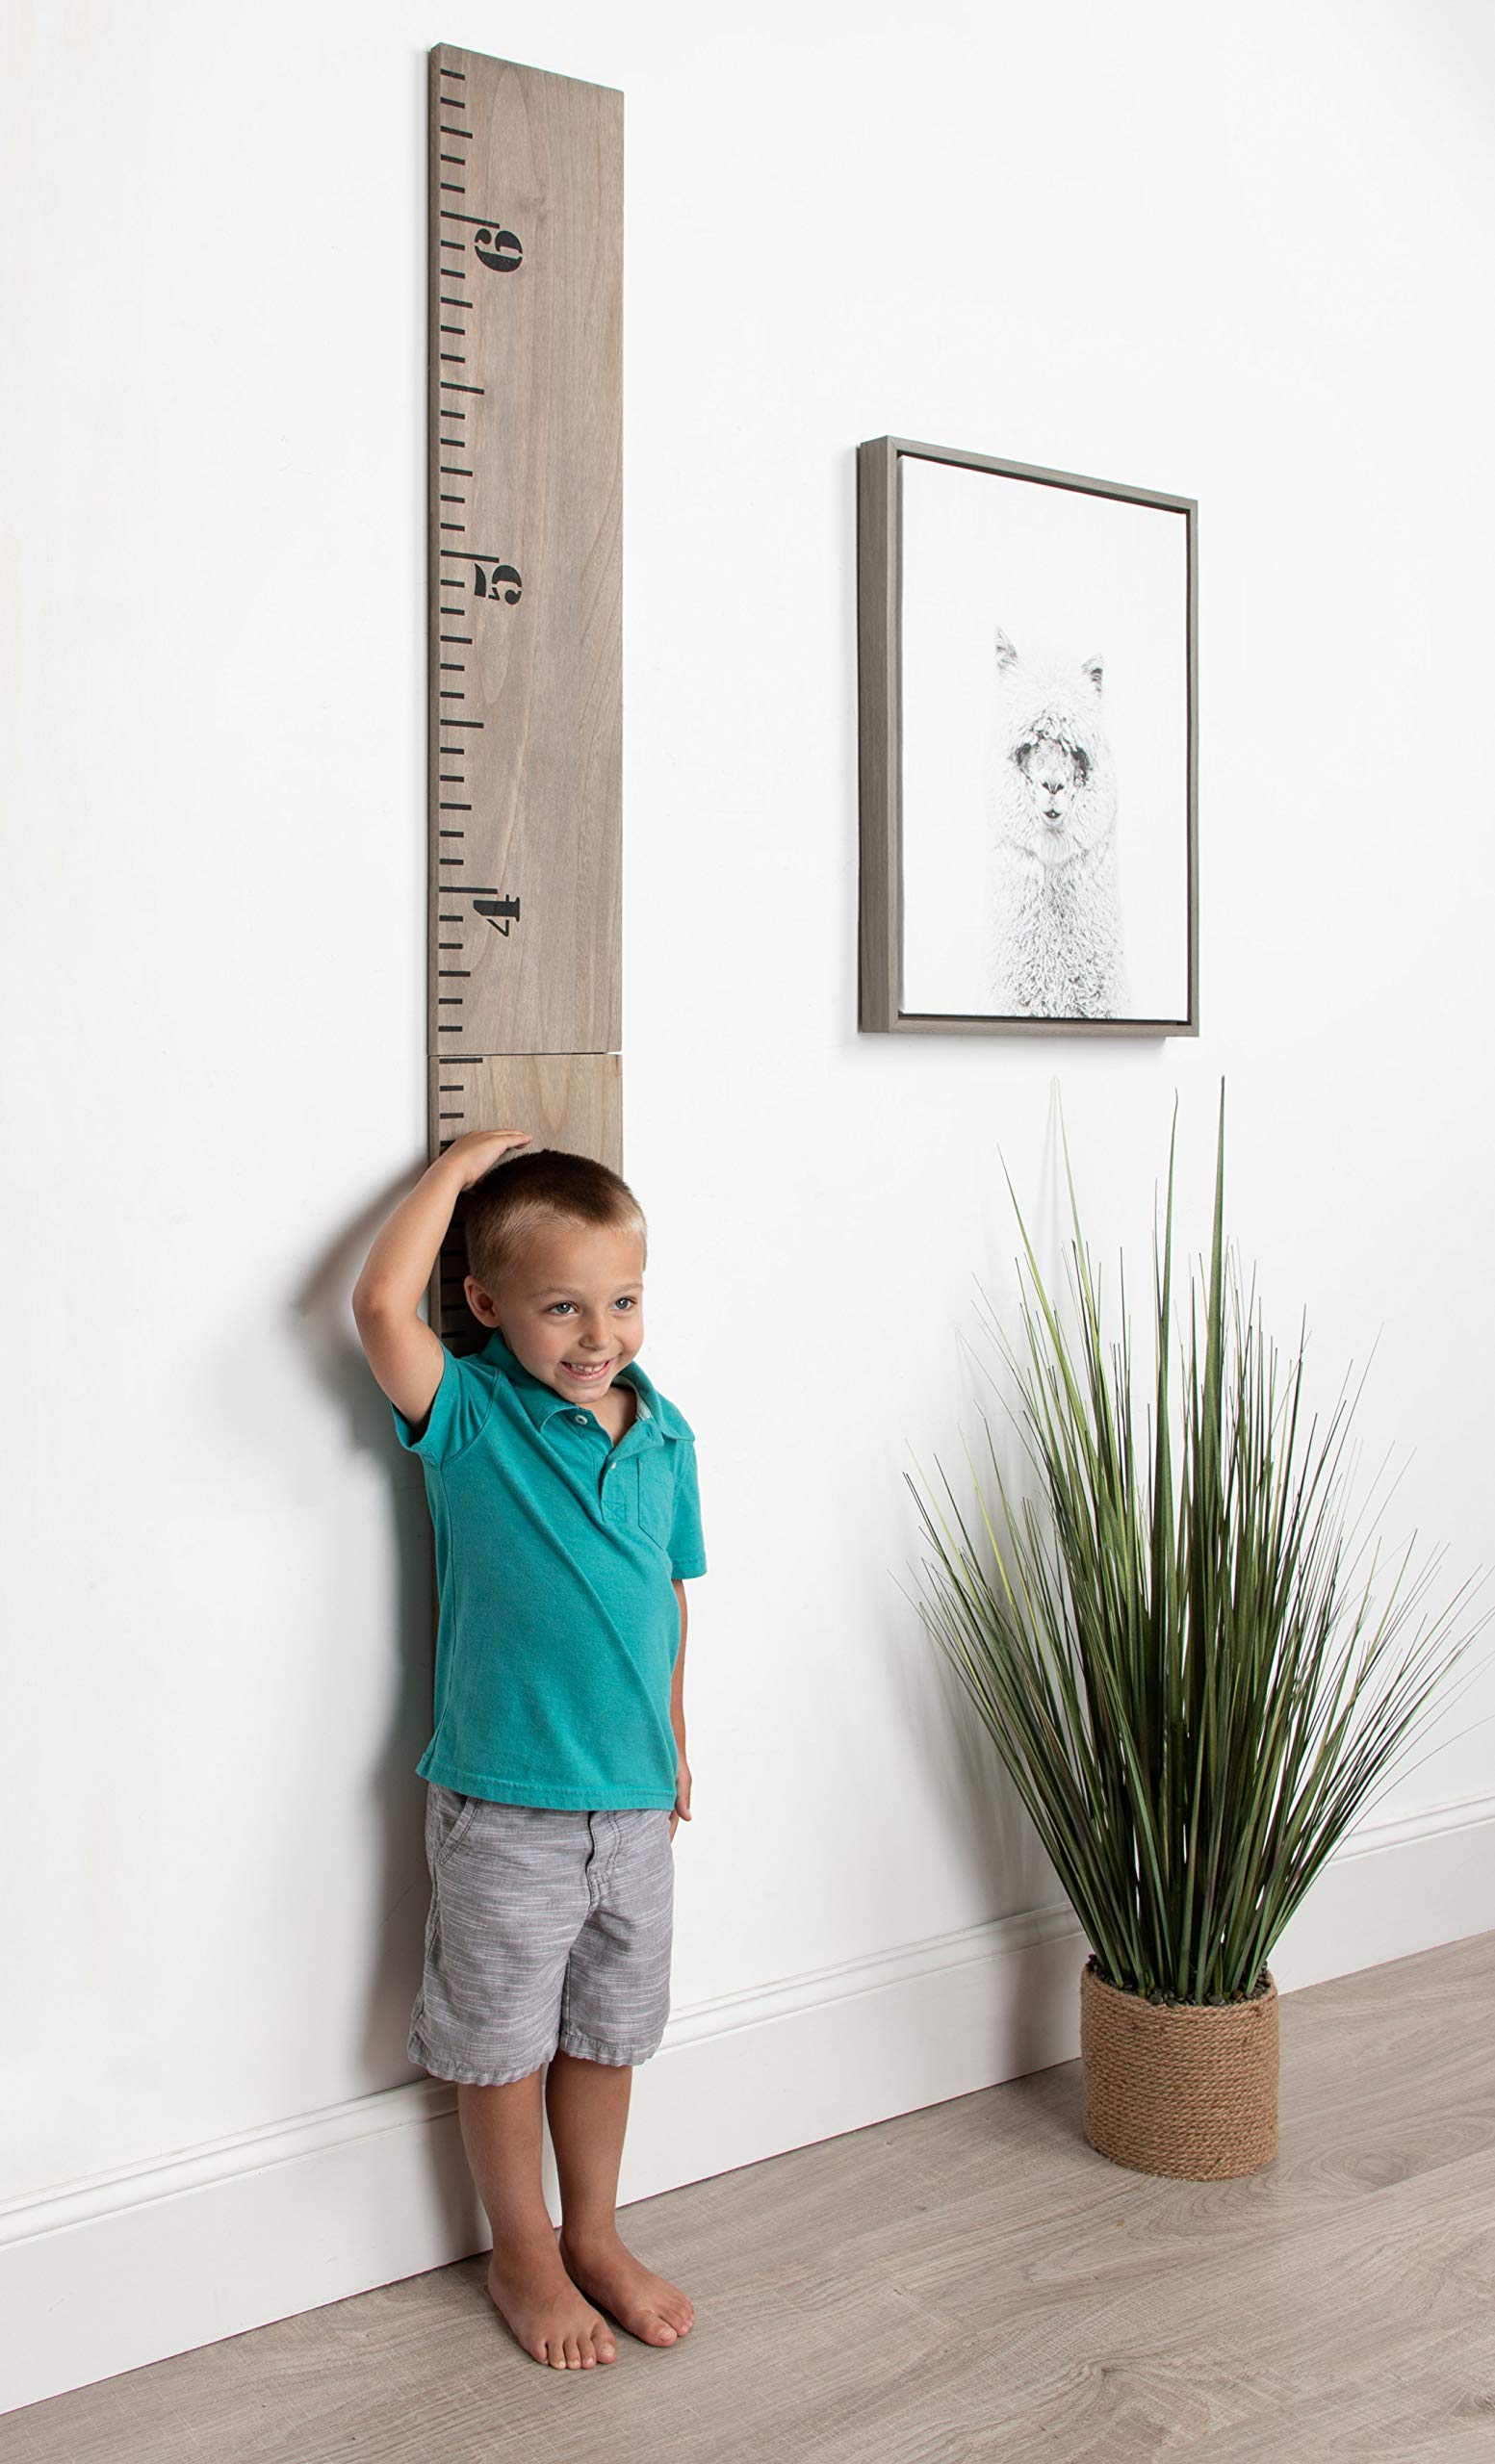 Kate and Laurel Growth Chart 6.5' Wood Wall Ruler, Gray by Kate and Laurel (Image #6)